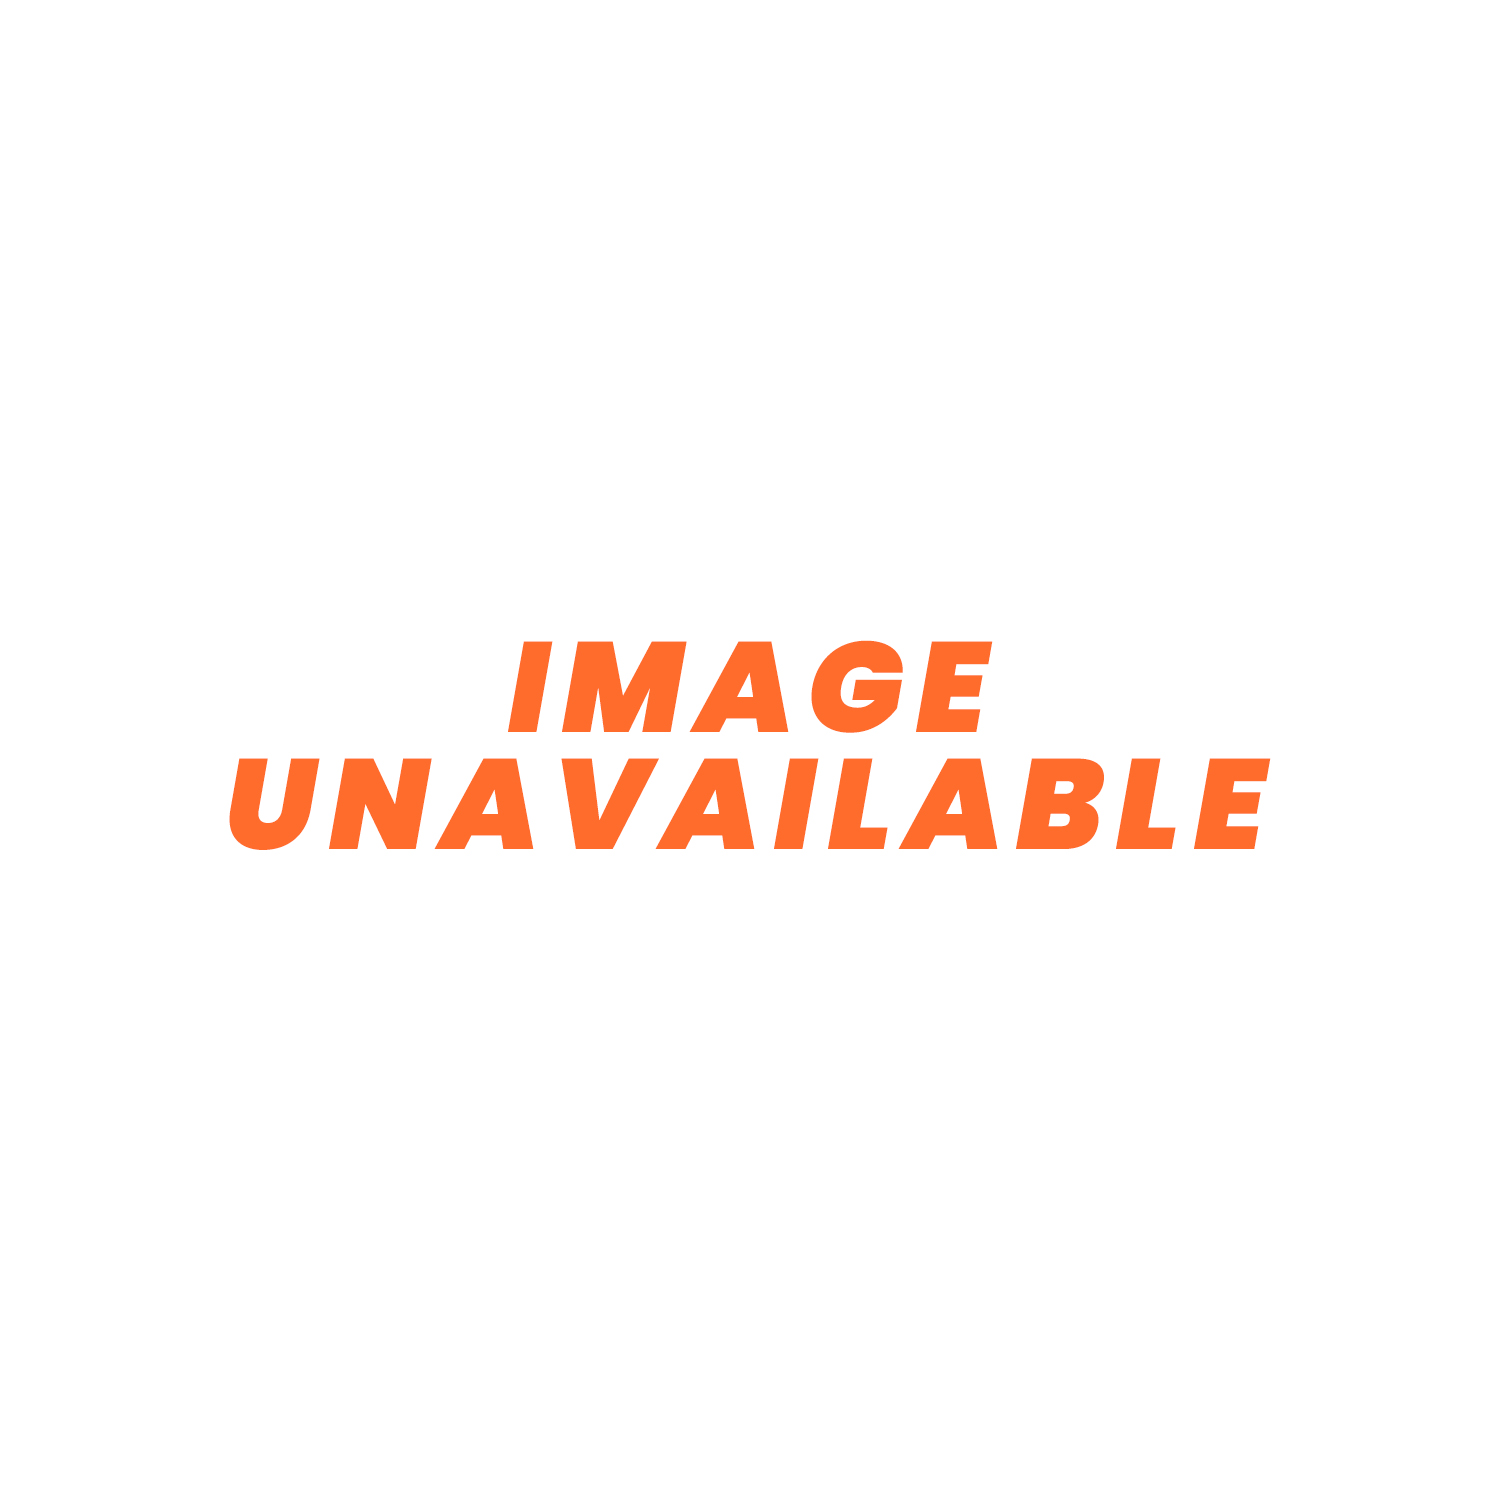 006-B46-22 SPAL Centrifugal Blower 543cfm Front